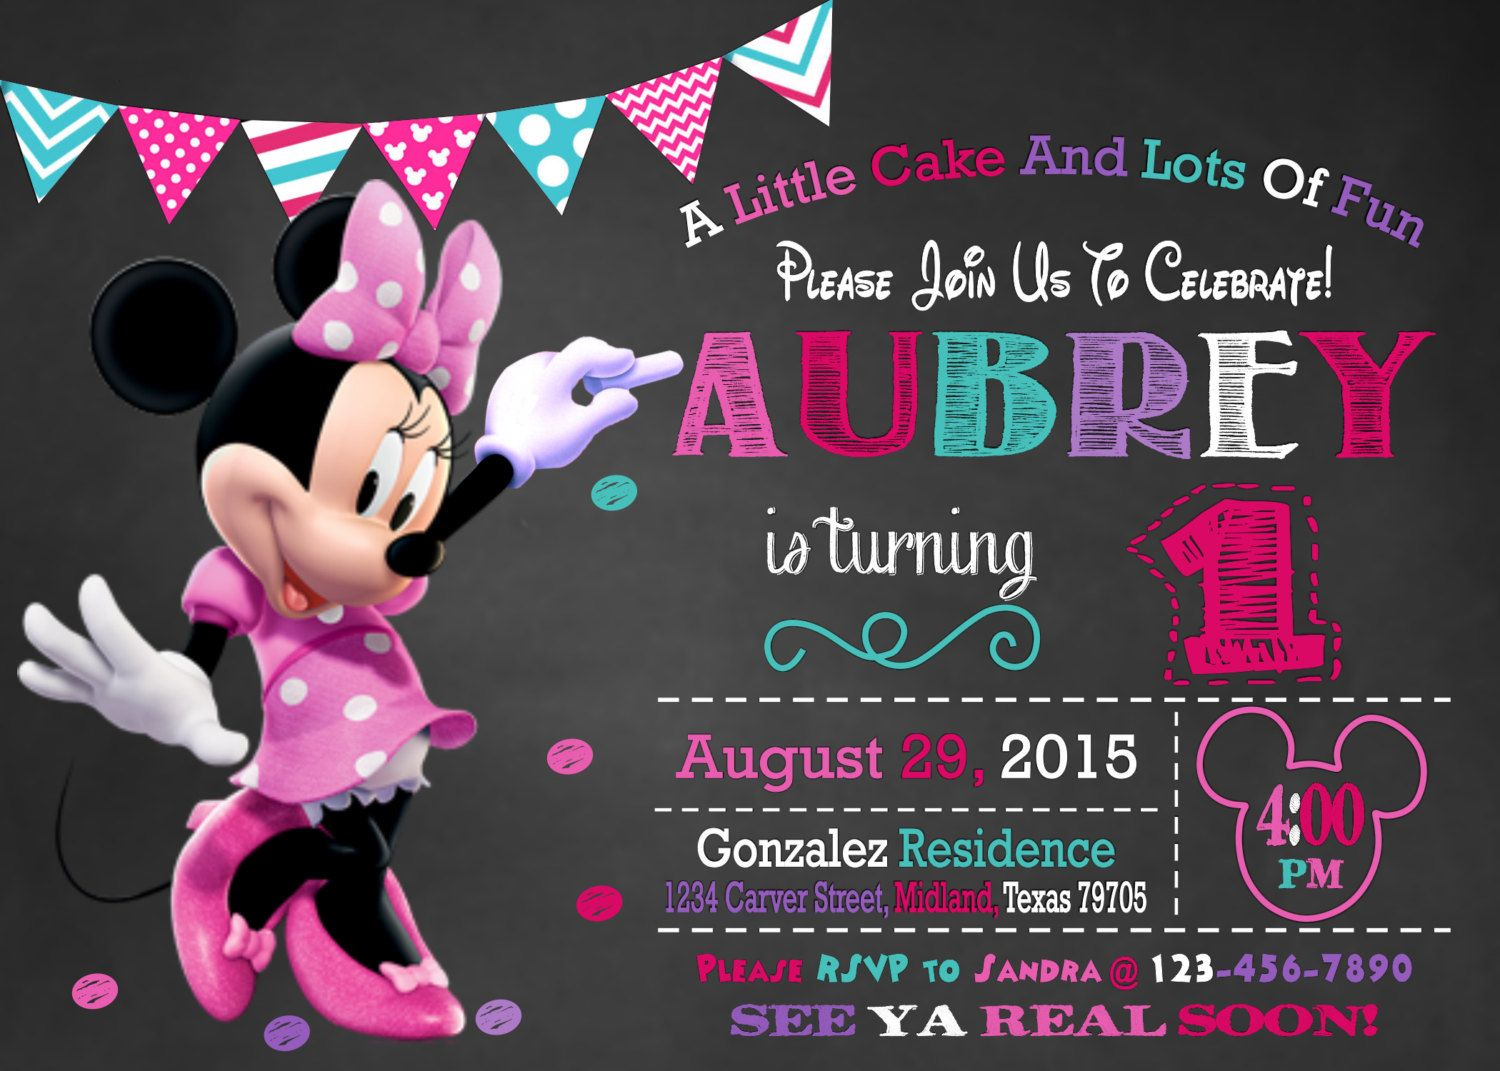 handmadest birthday party invitations%0A  st birthday invitation  MINNIE MOUSE  Birthday INVITATIONS  Minnie  Mouse  Invita  View